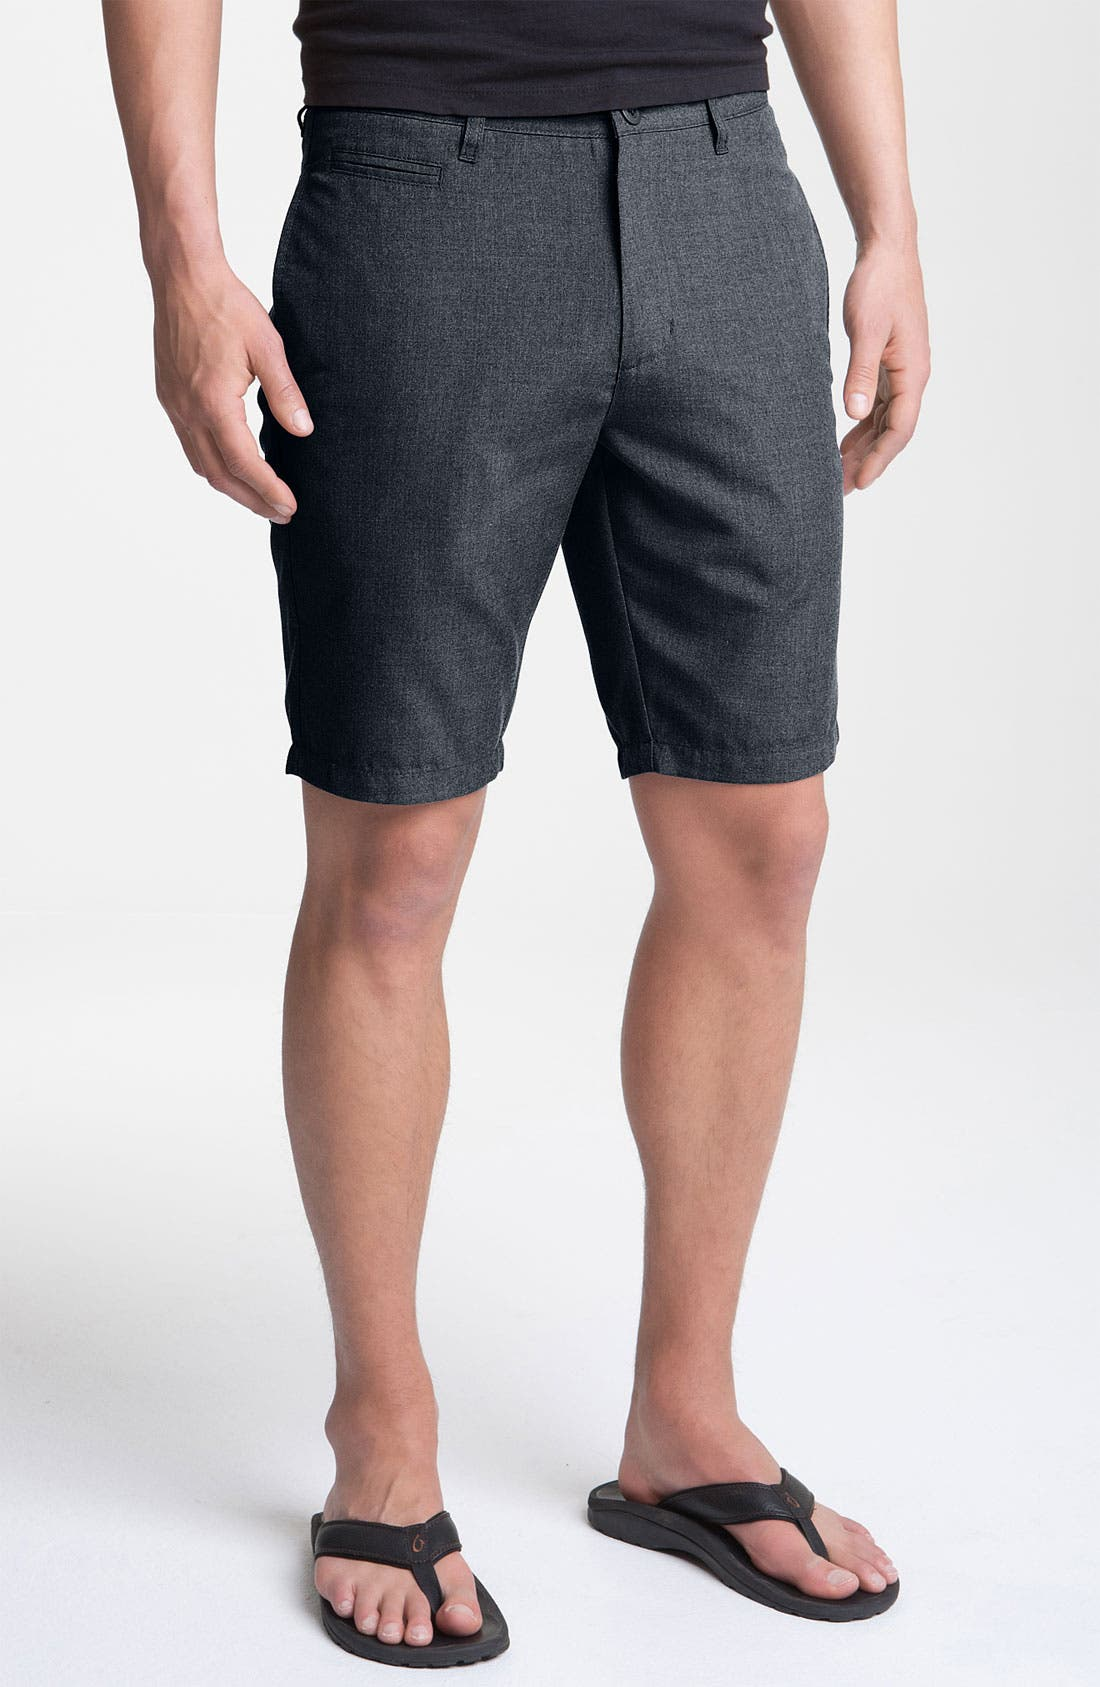 Alternate Image 1 Selected - RVCA 'Marrow III' Shorts (Online Only)